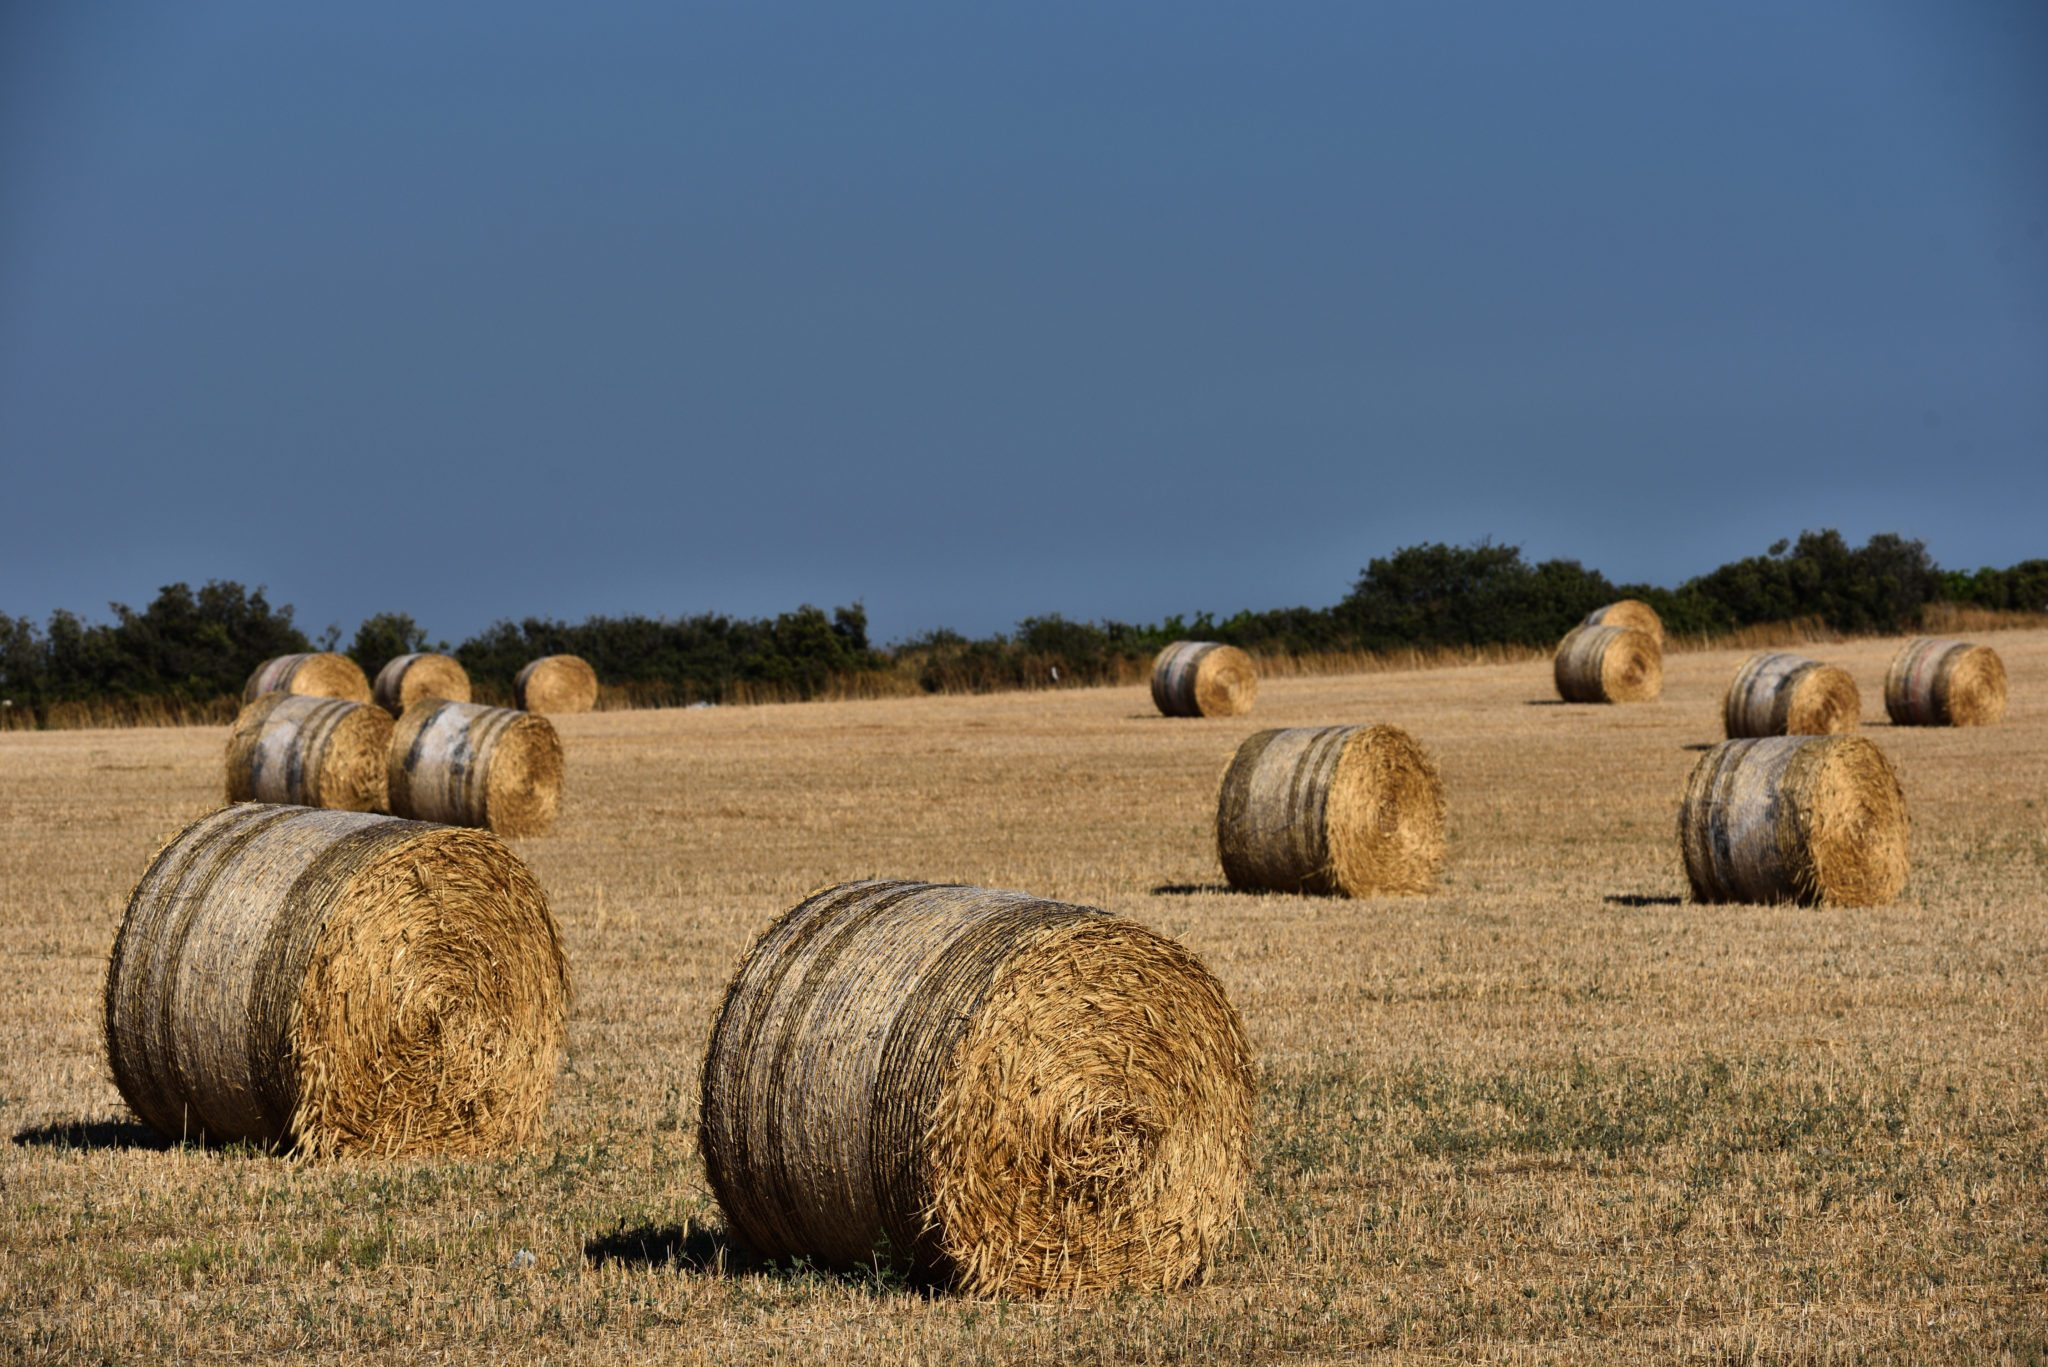 Straw bales, haystack on agricultural farmland against blue sky